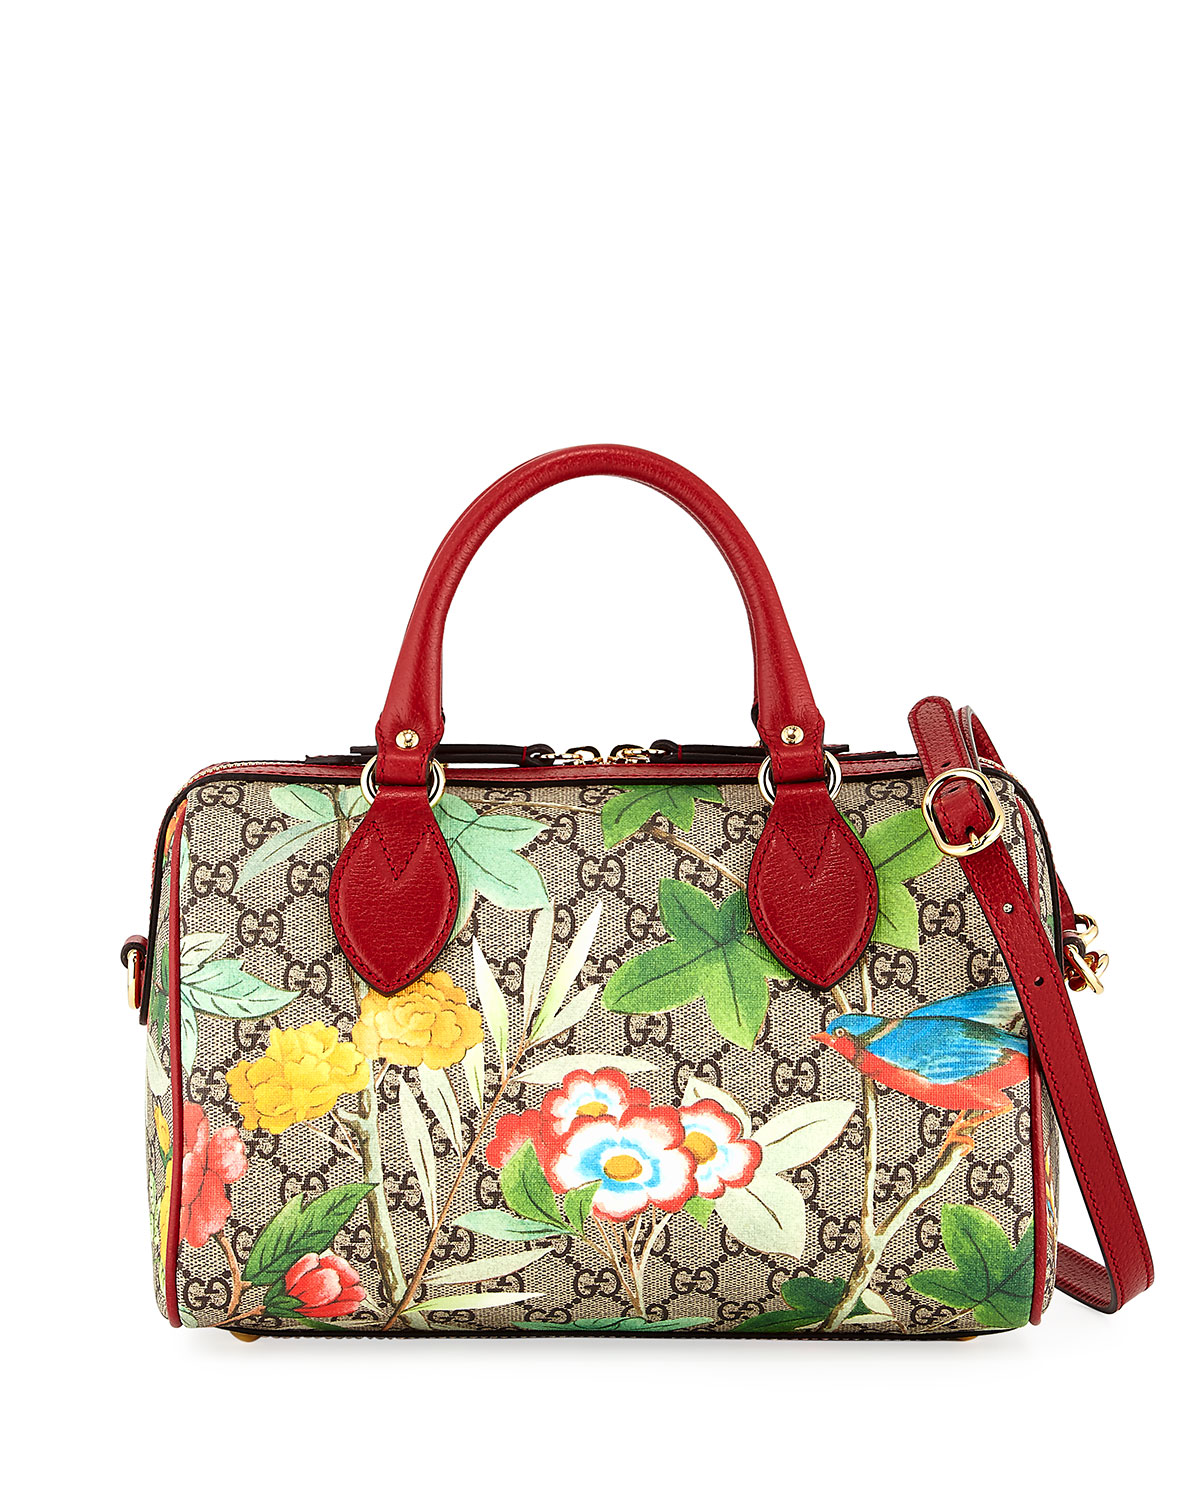 6be0af8d7df Gucci Tian GG Supreme Small Top-Handle Bag